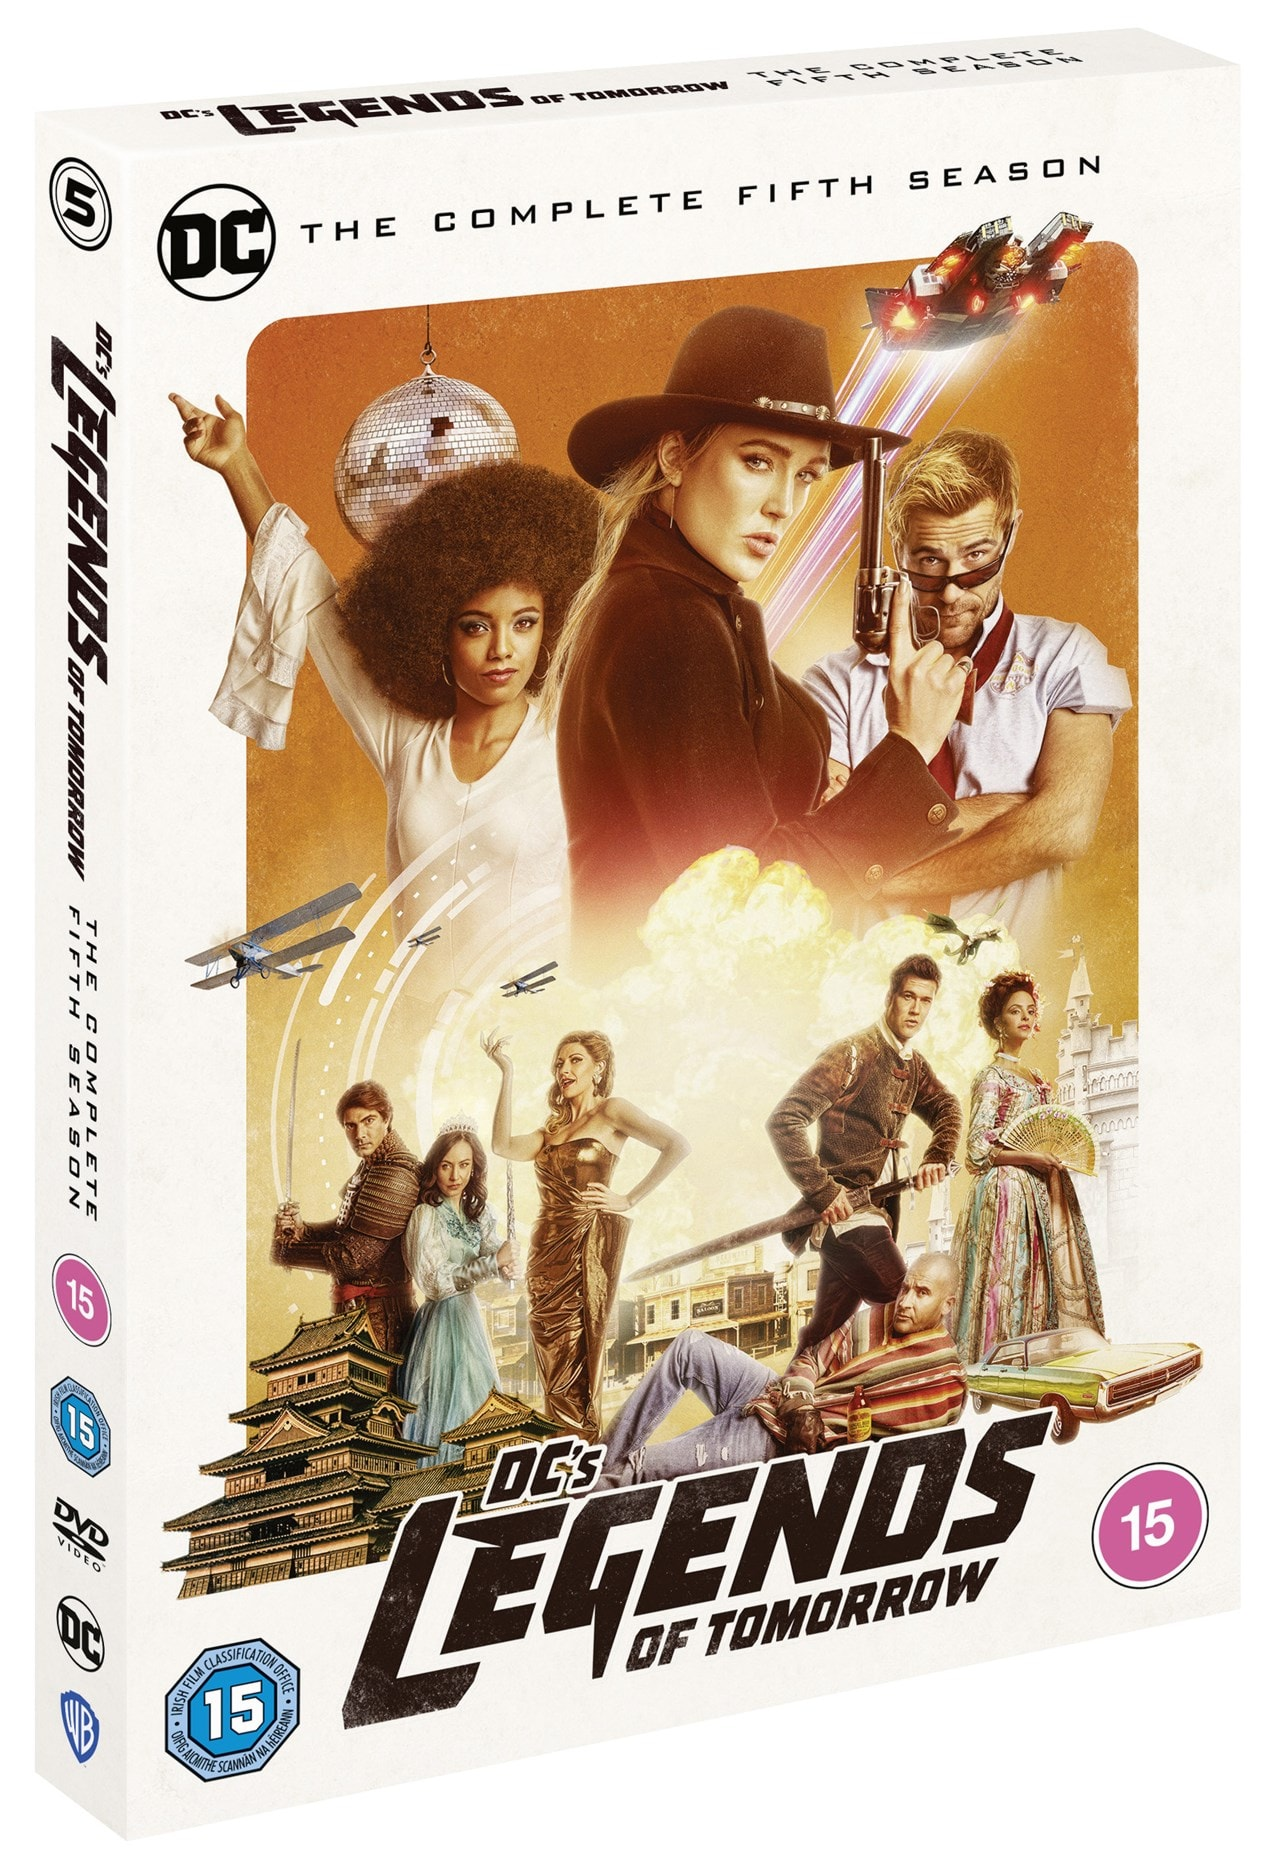 DC's Legends of Tomorrow: The Complete Fifth Season - 2